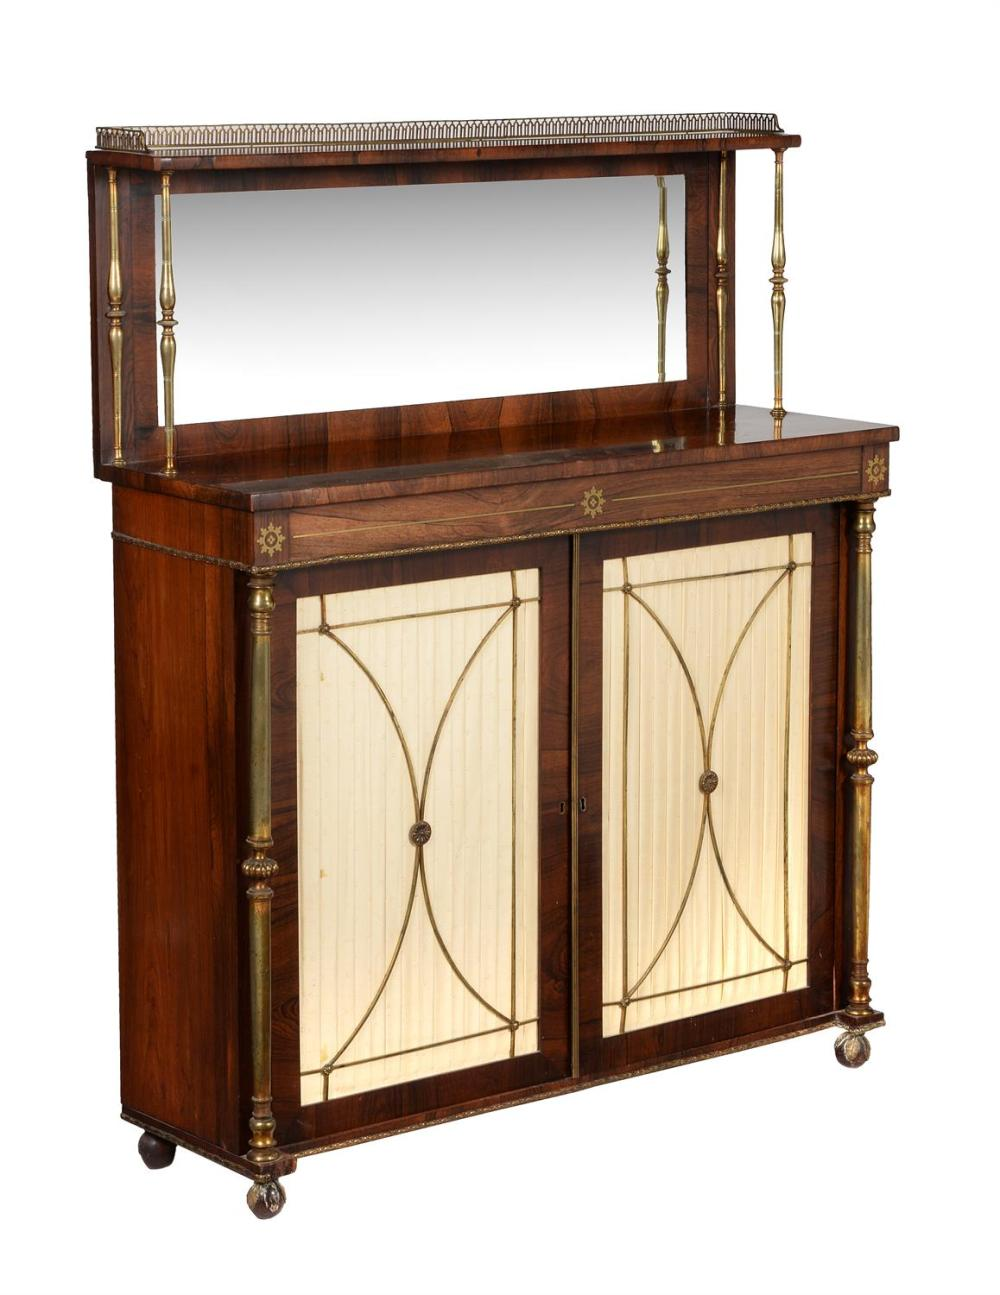 Y A Regency rosewood and gilt metal mounted side cabinet